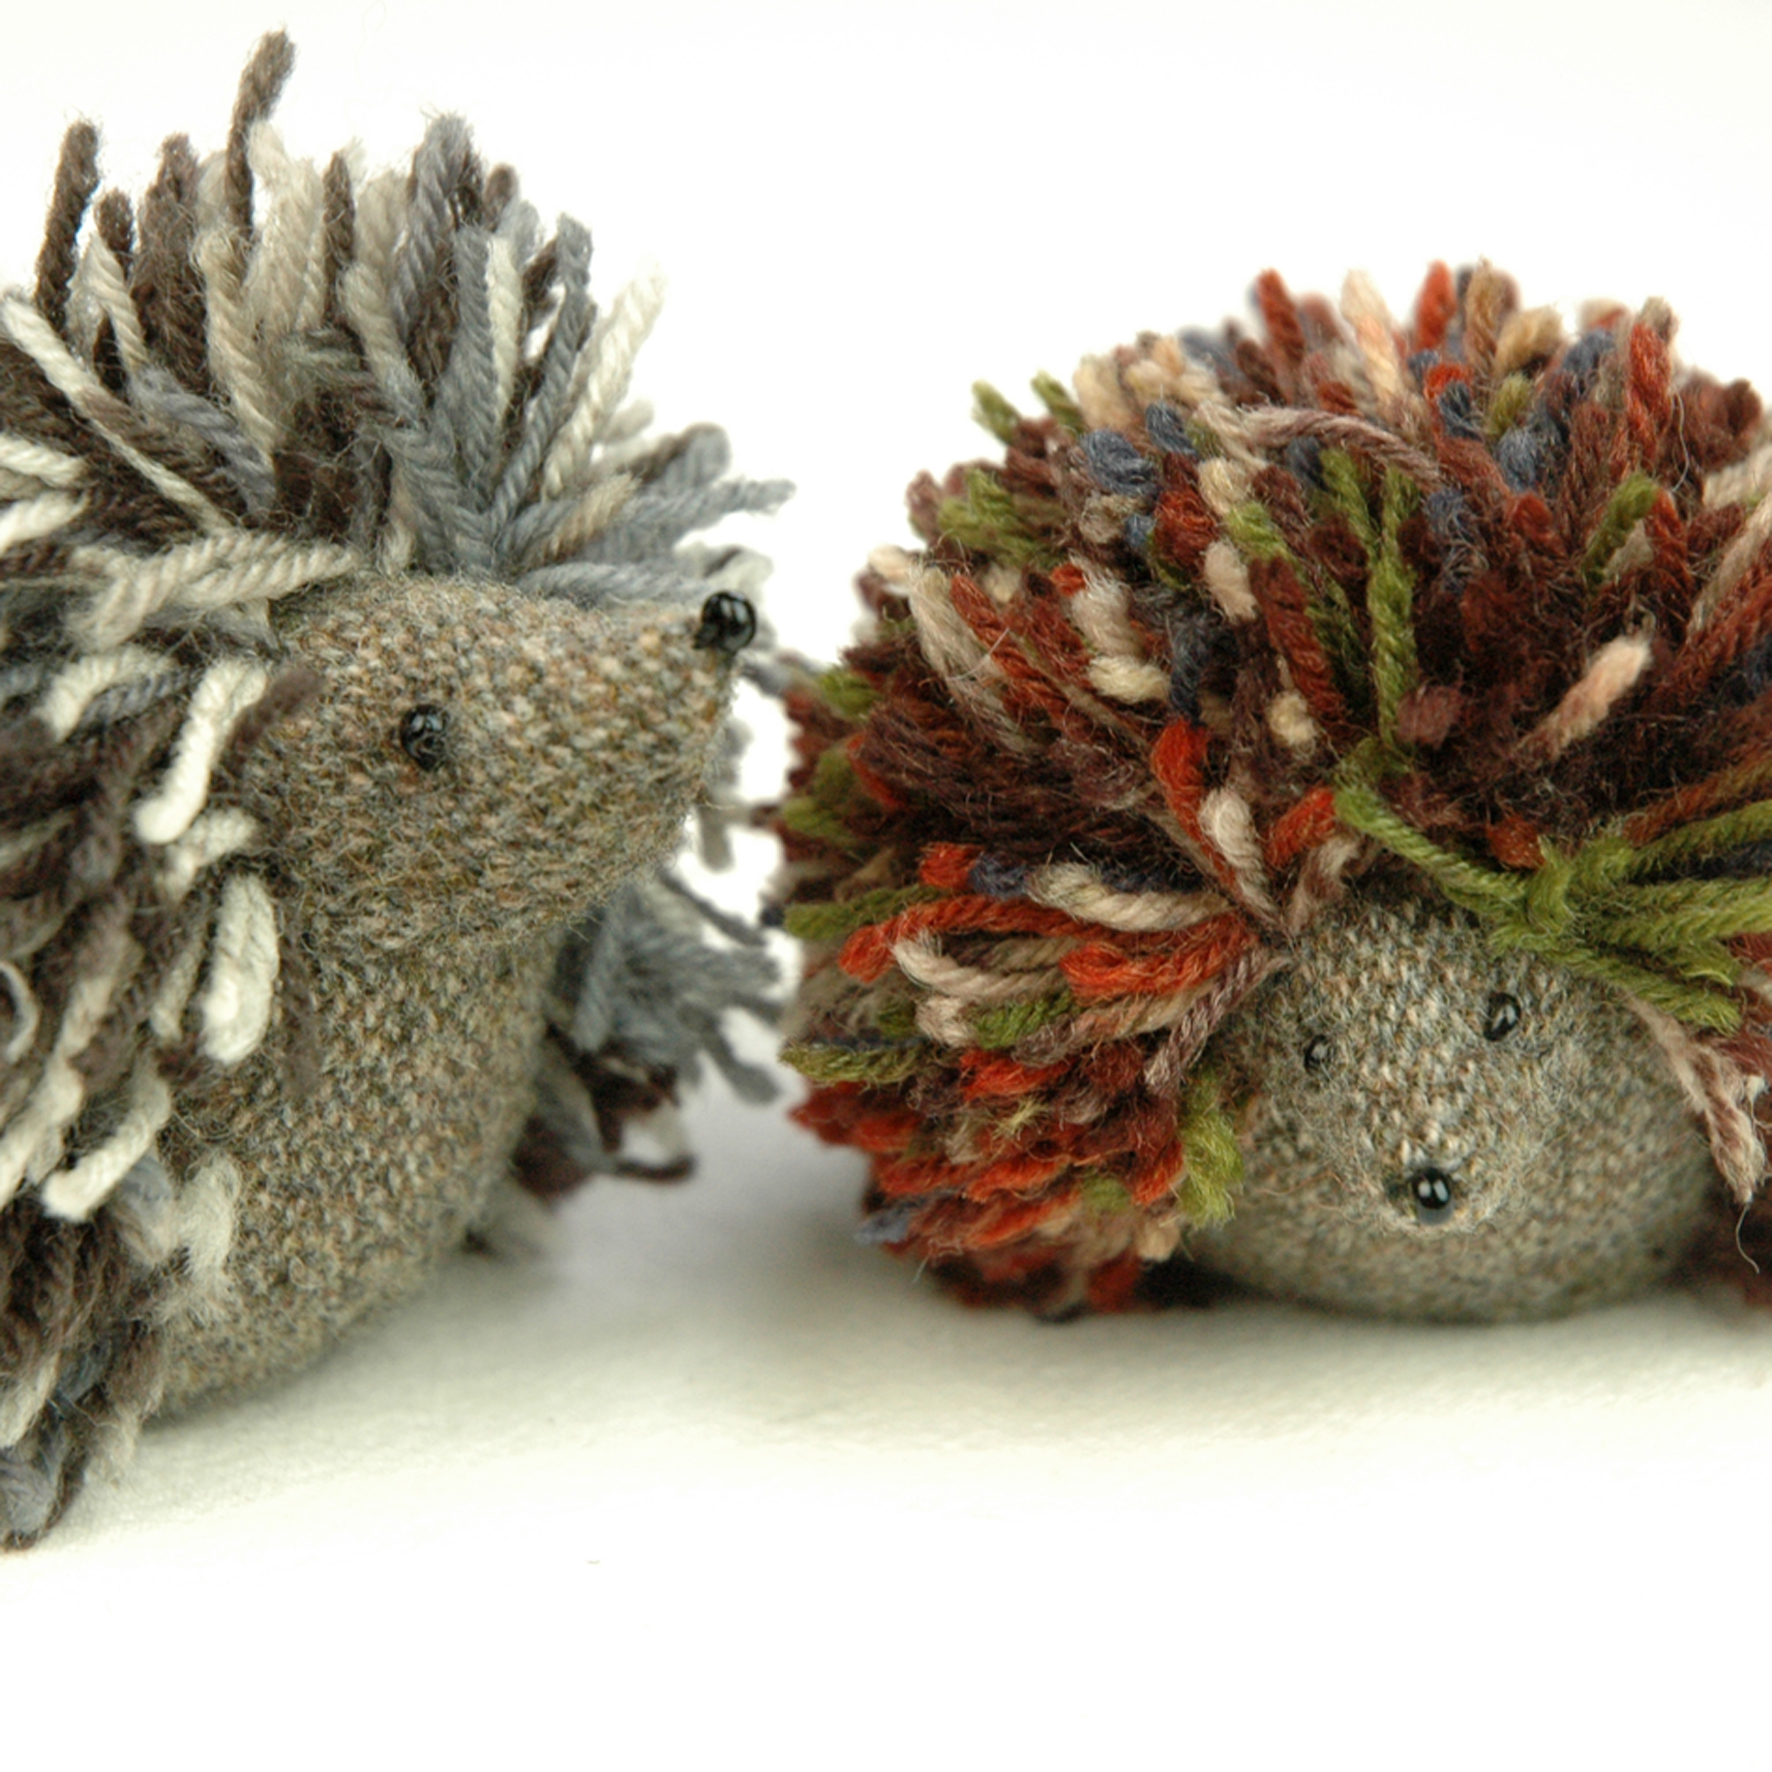 Handmade hedgehog paperweights.